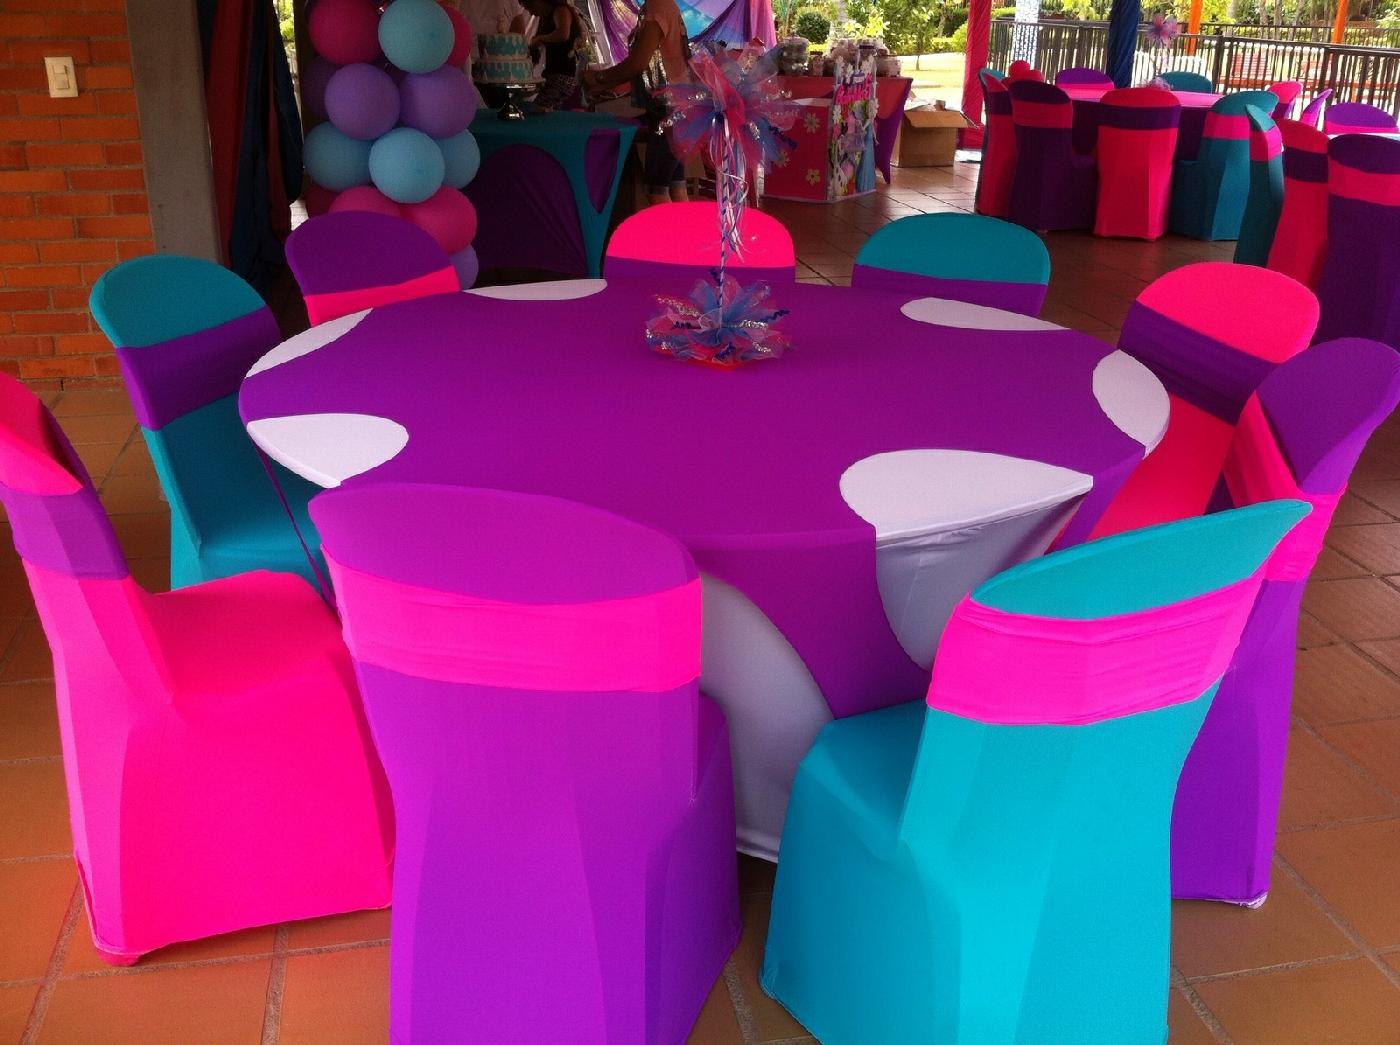 Eventos los chamos sillas para eventos en cali carrera for Articulos para decoracion